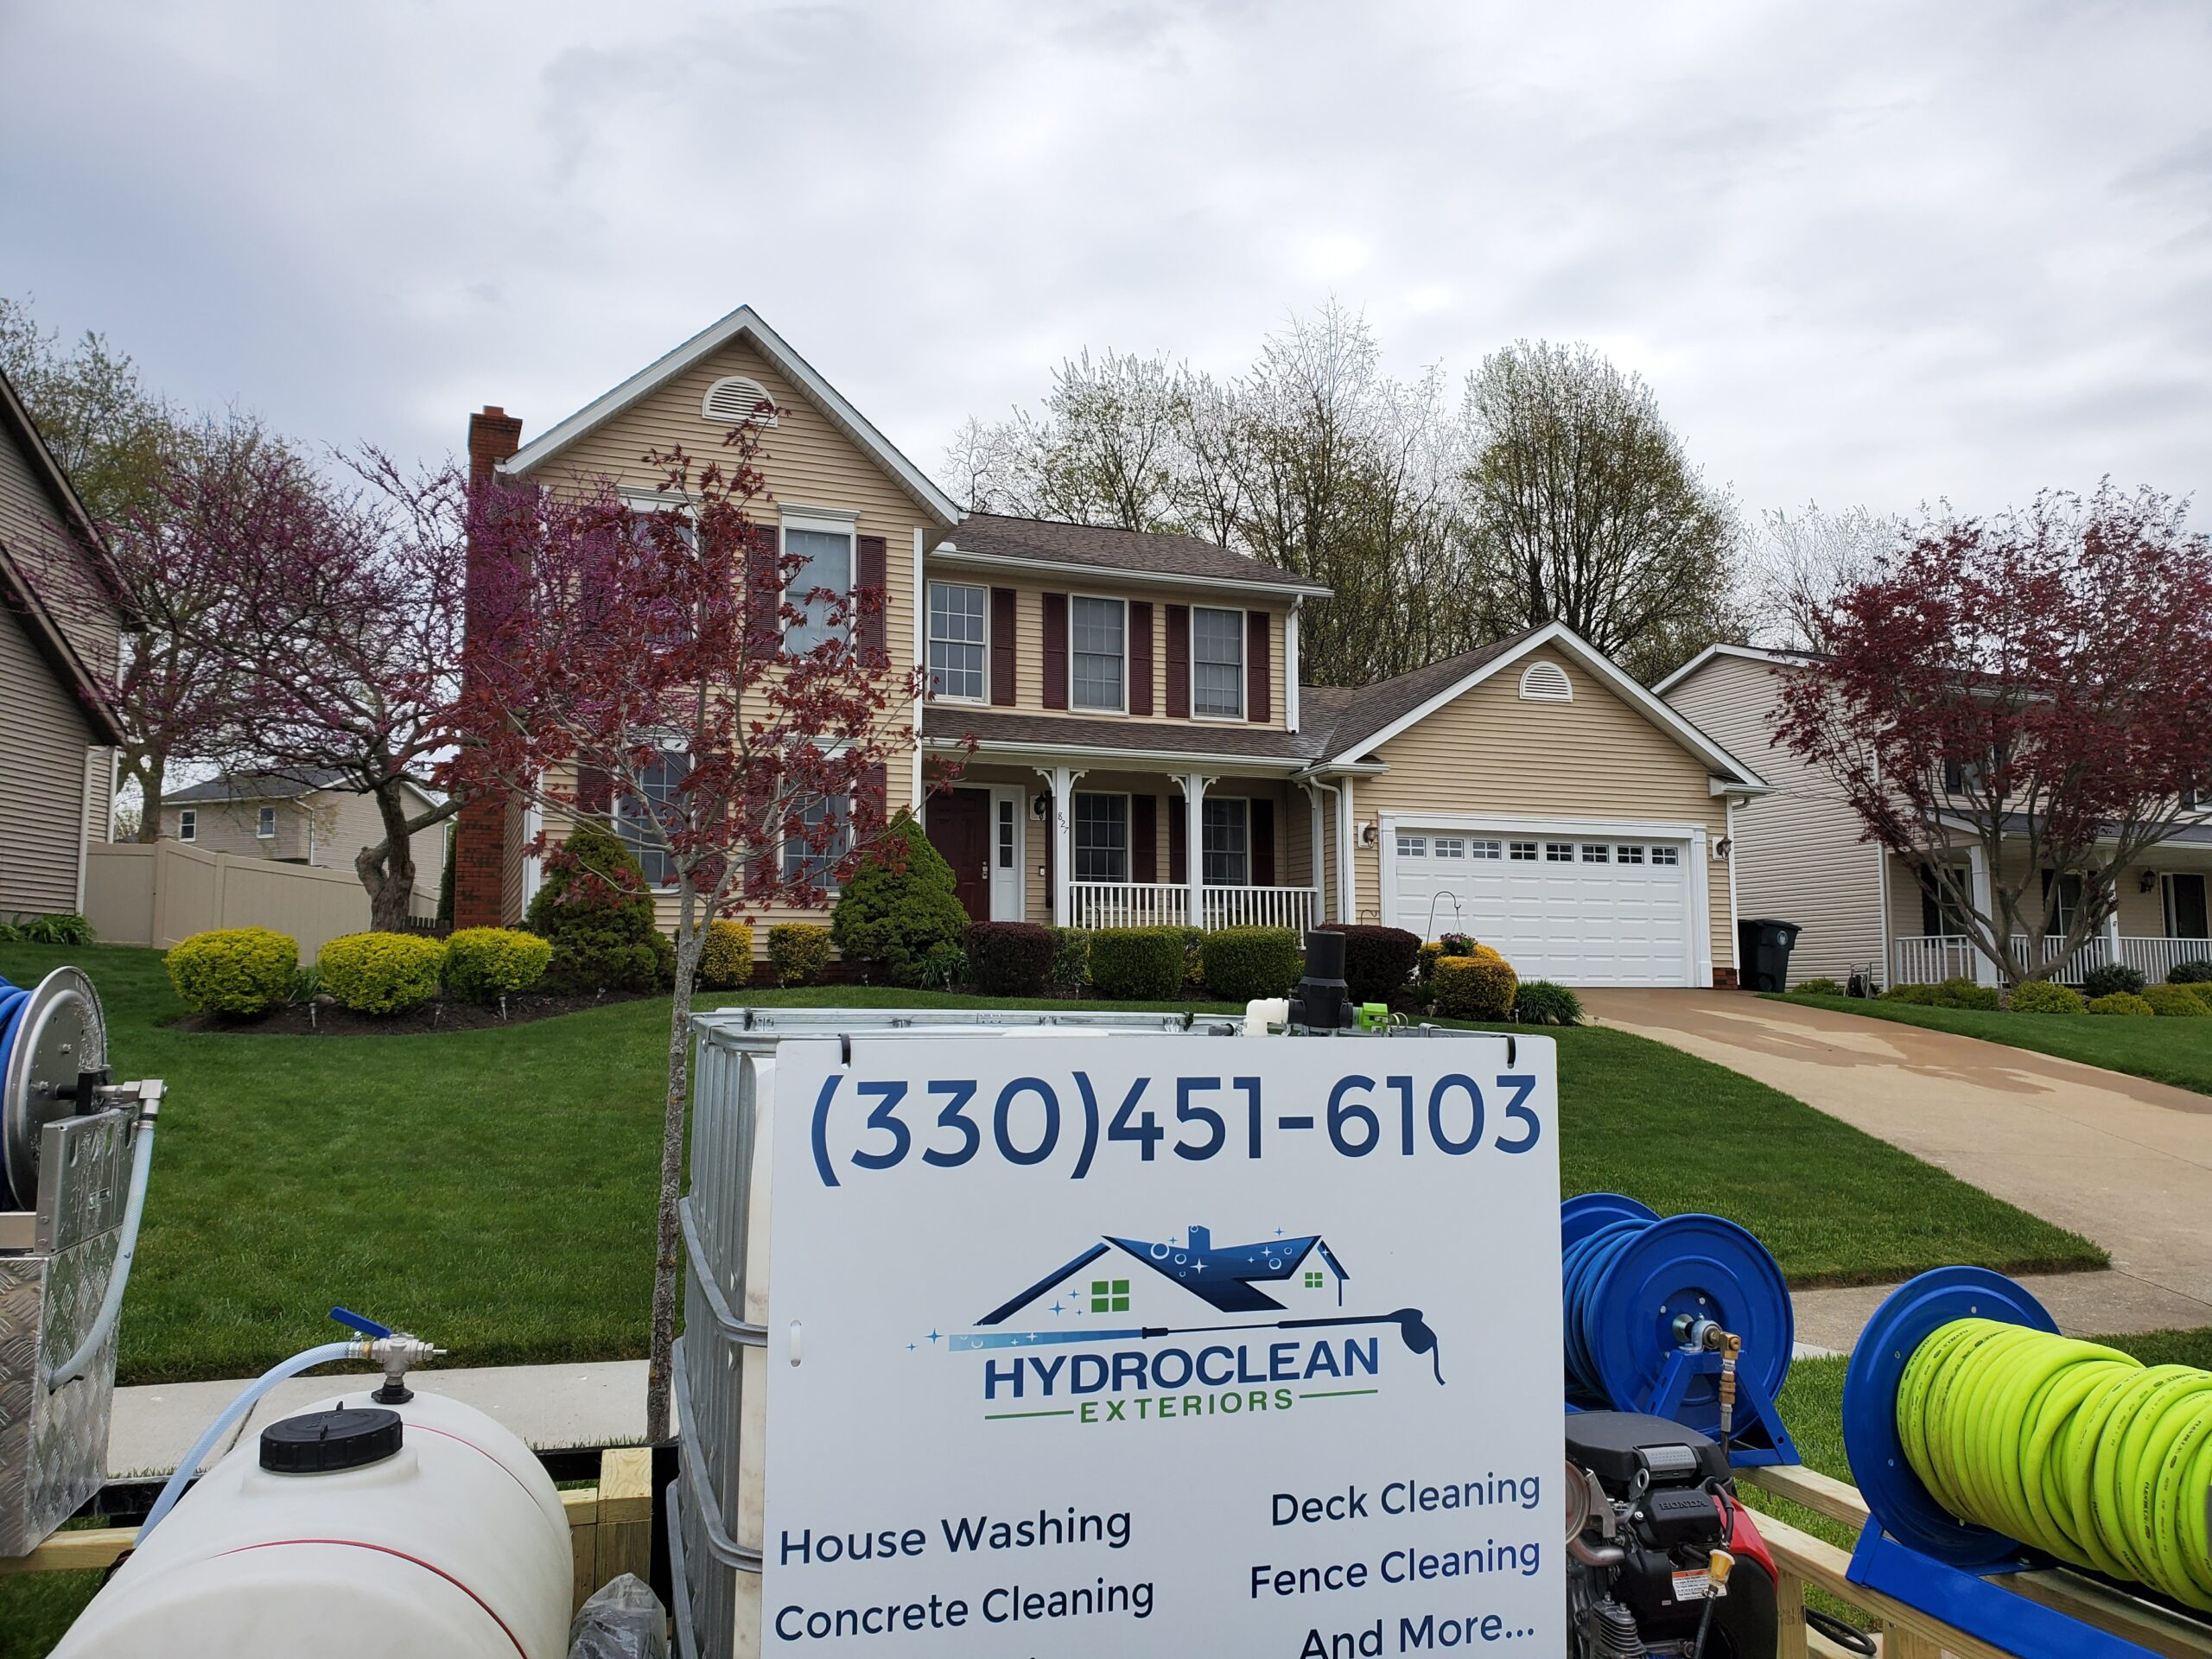 House with pressure washing trailer in front